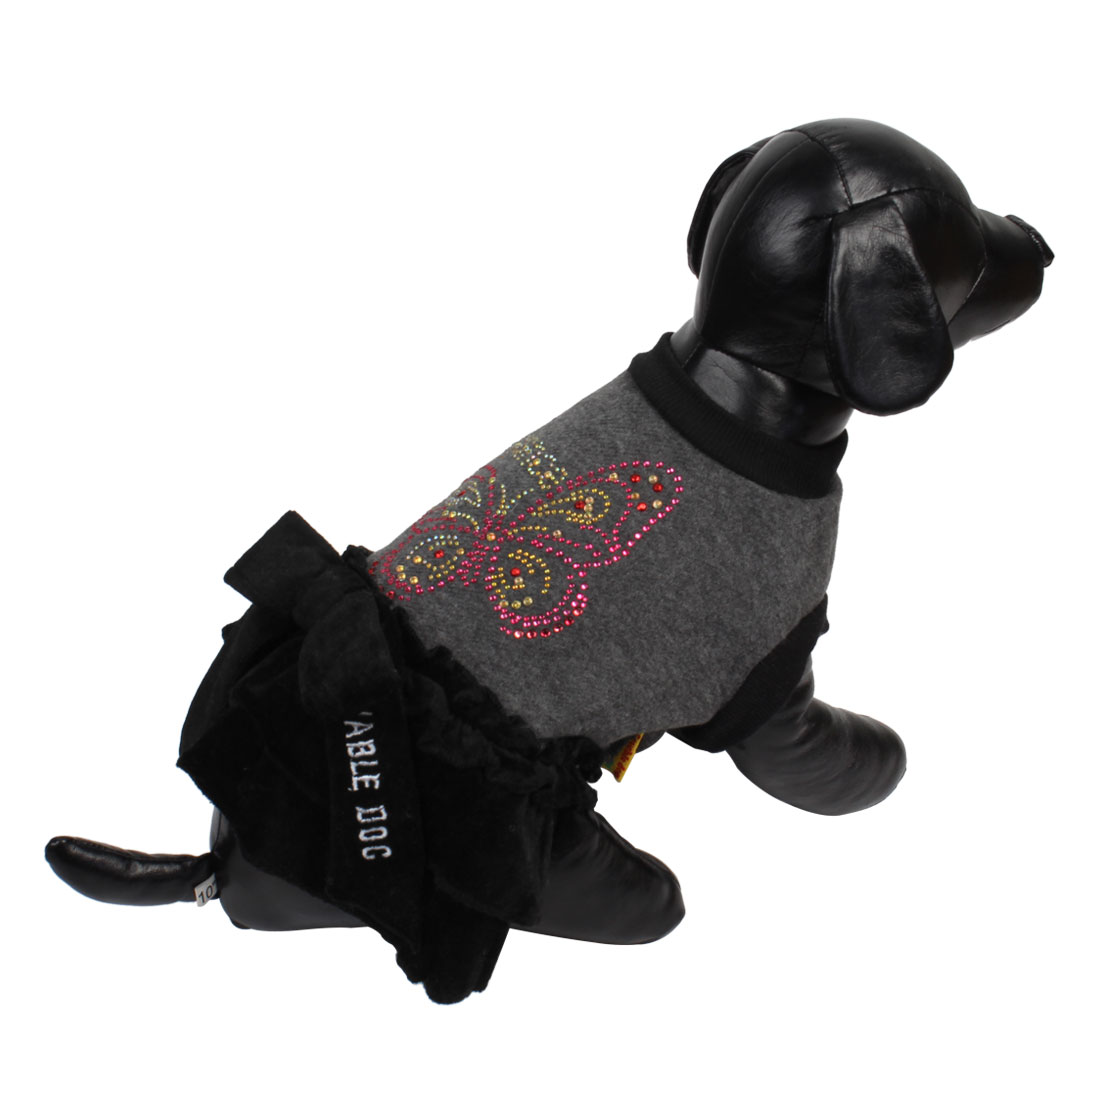 Winter Spring Butterfly Decor Pet Dog Cat Apparel Costume Dress Black XL